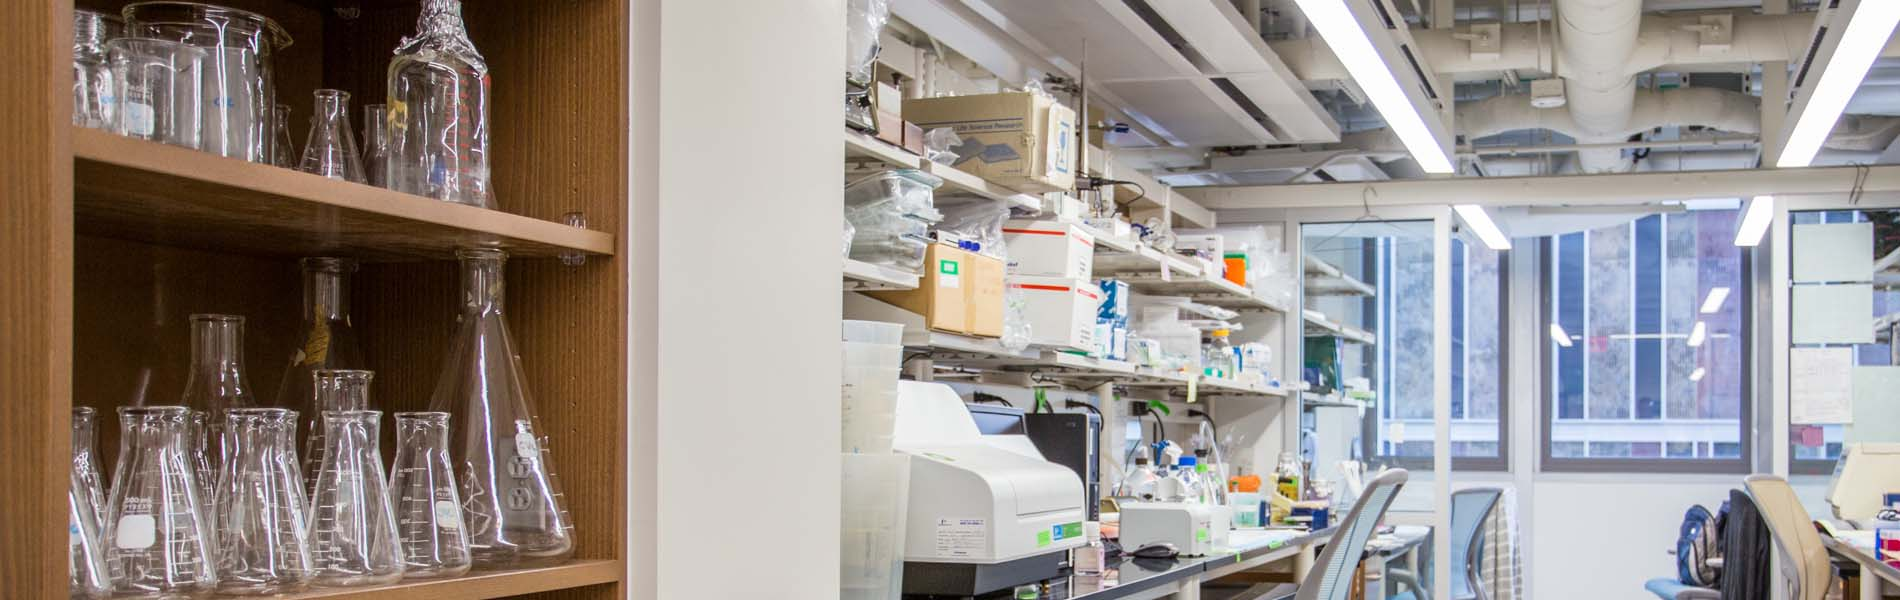 Snapshot of Research Laboratory without people